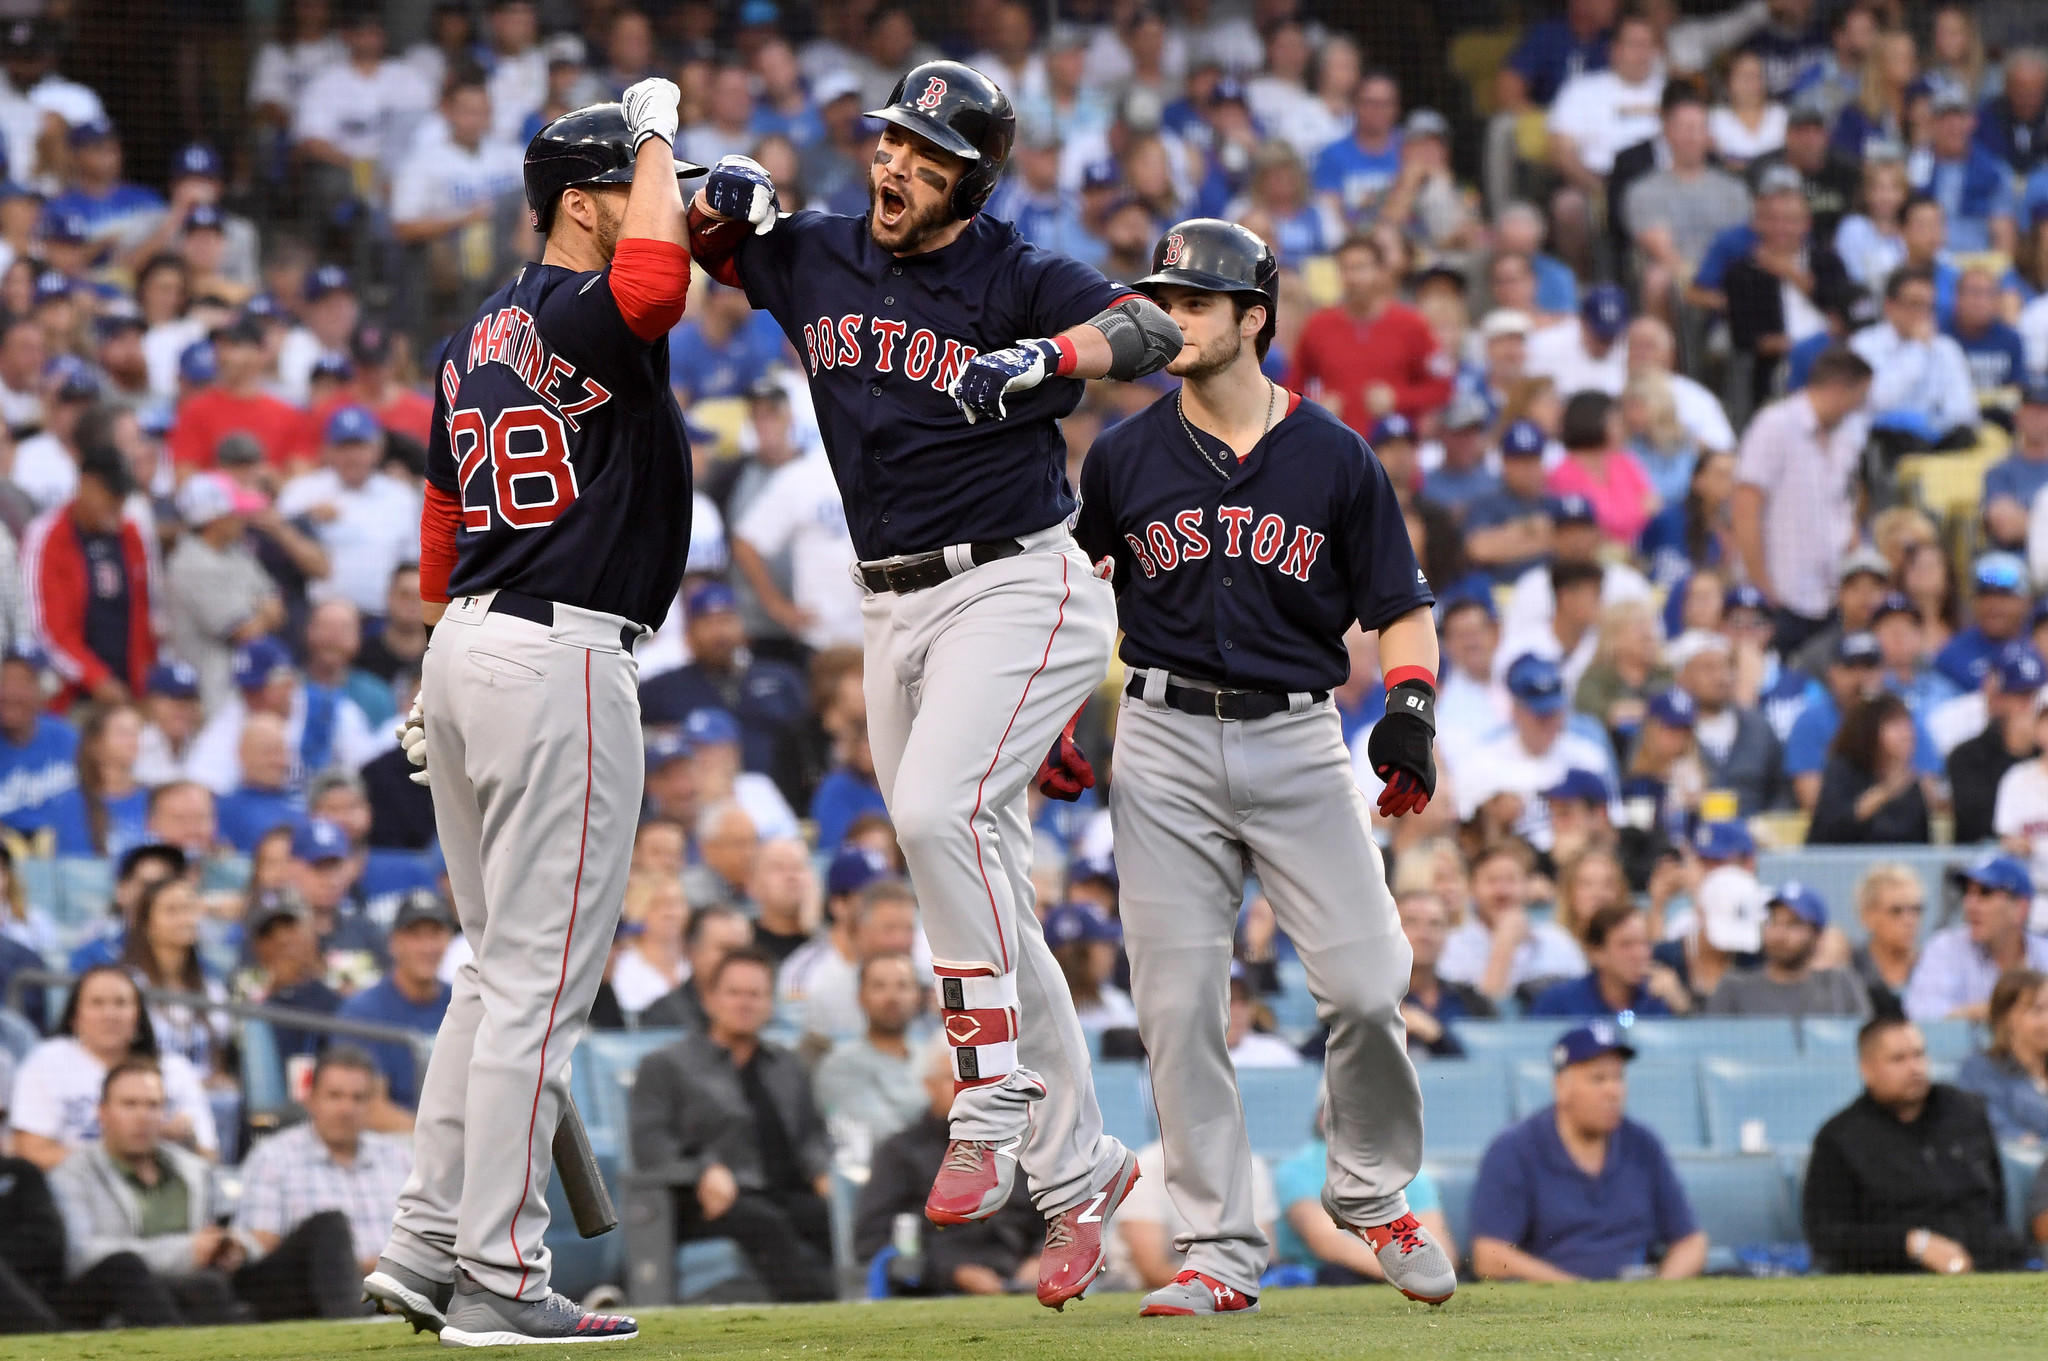 a4b55becd Steve Pearce, center, celebrates his two-run home run against the Dodgers in  the 1st inning. (Wally Skalij / Los Angeles Times) ...